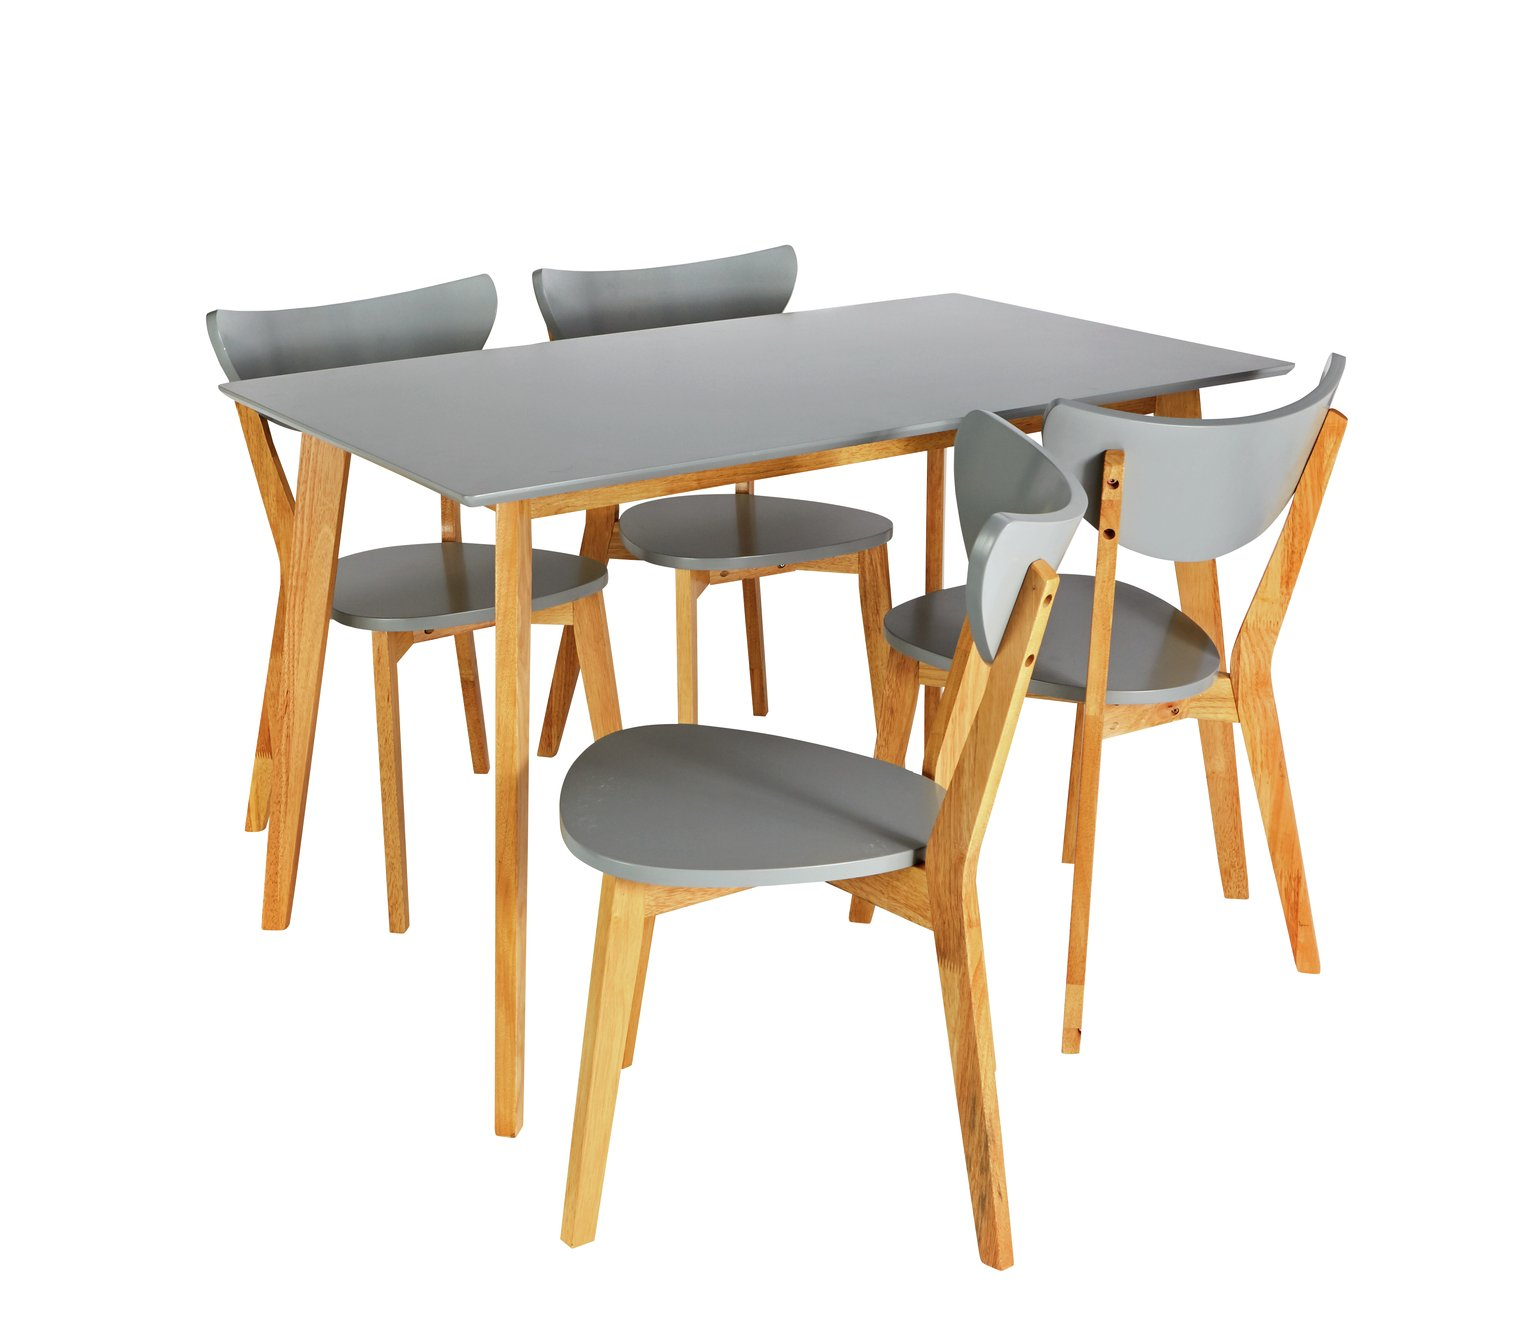 Argos Home Harlow Dining Table & 4 Chairs review